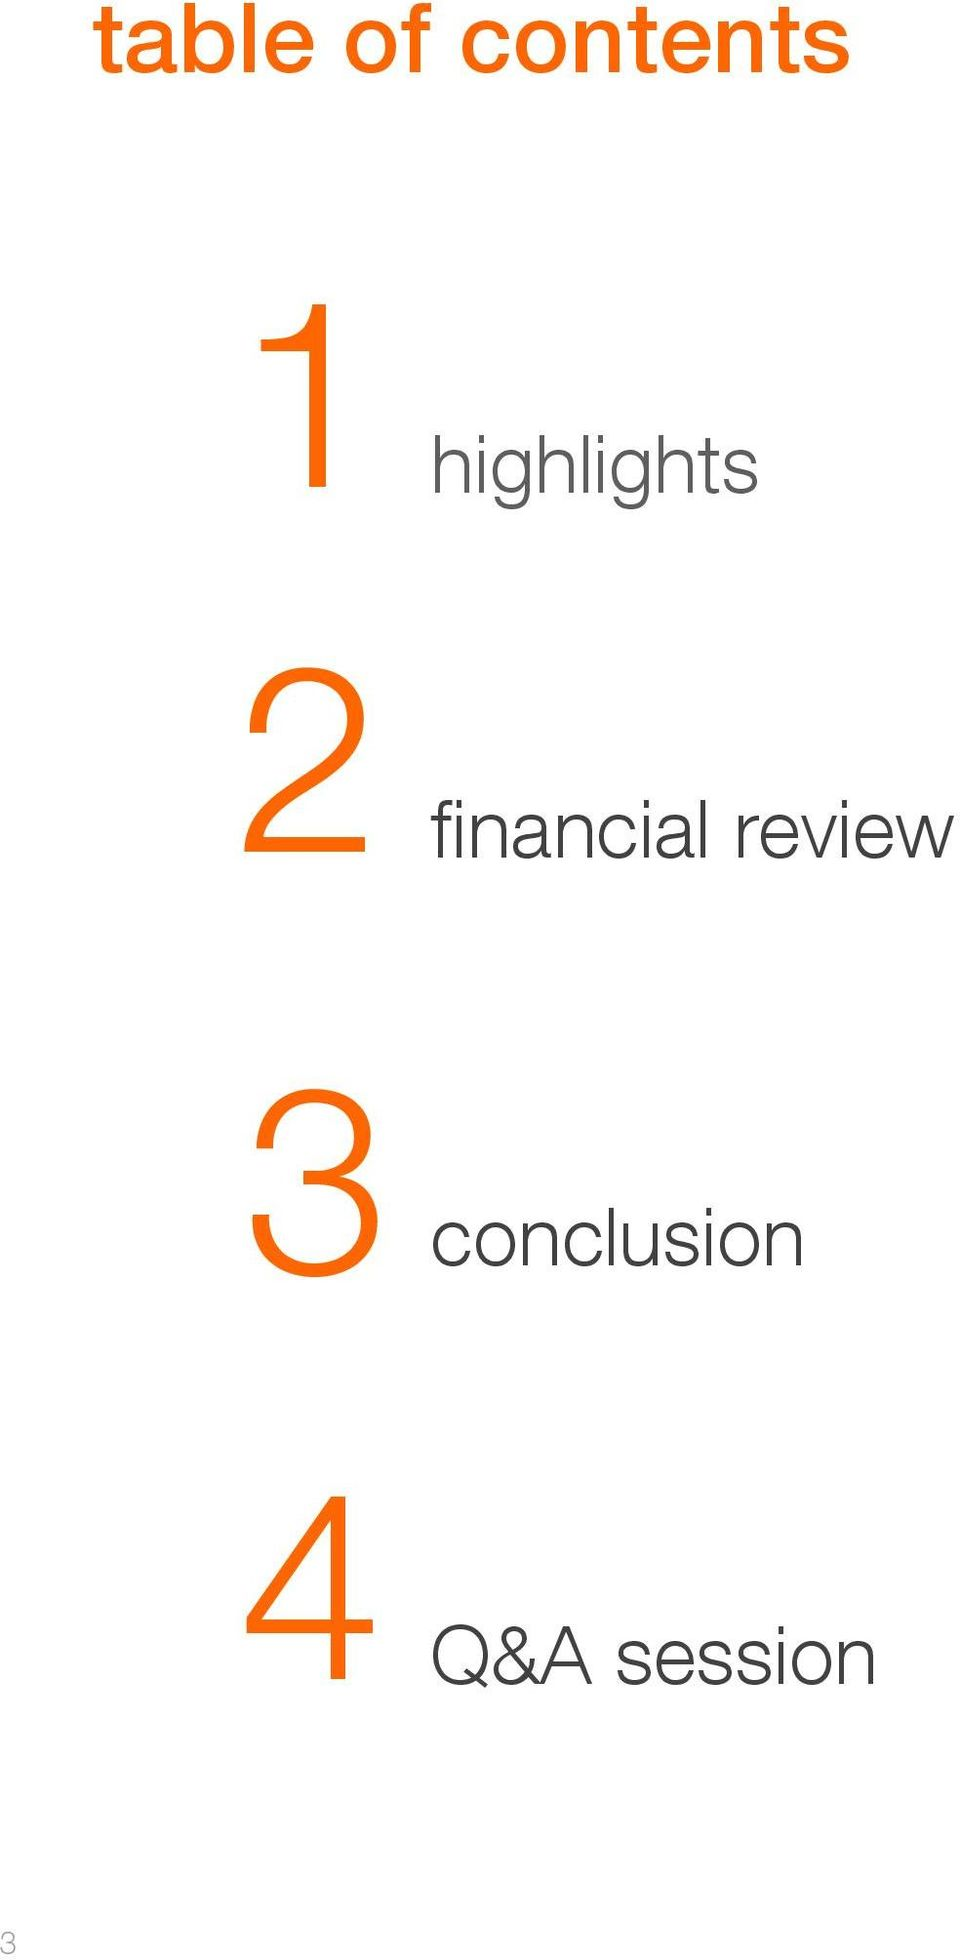 financial review 3